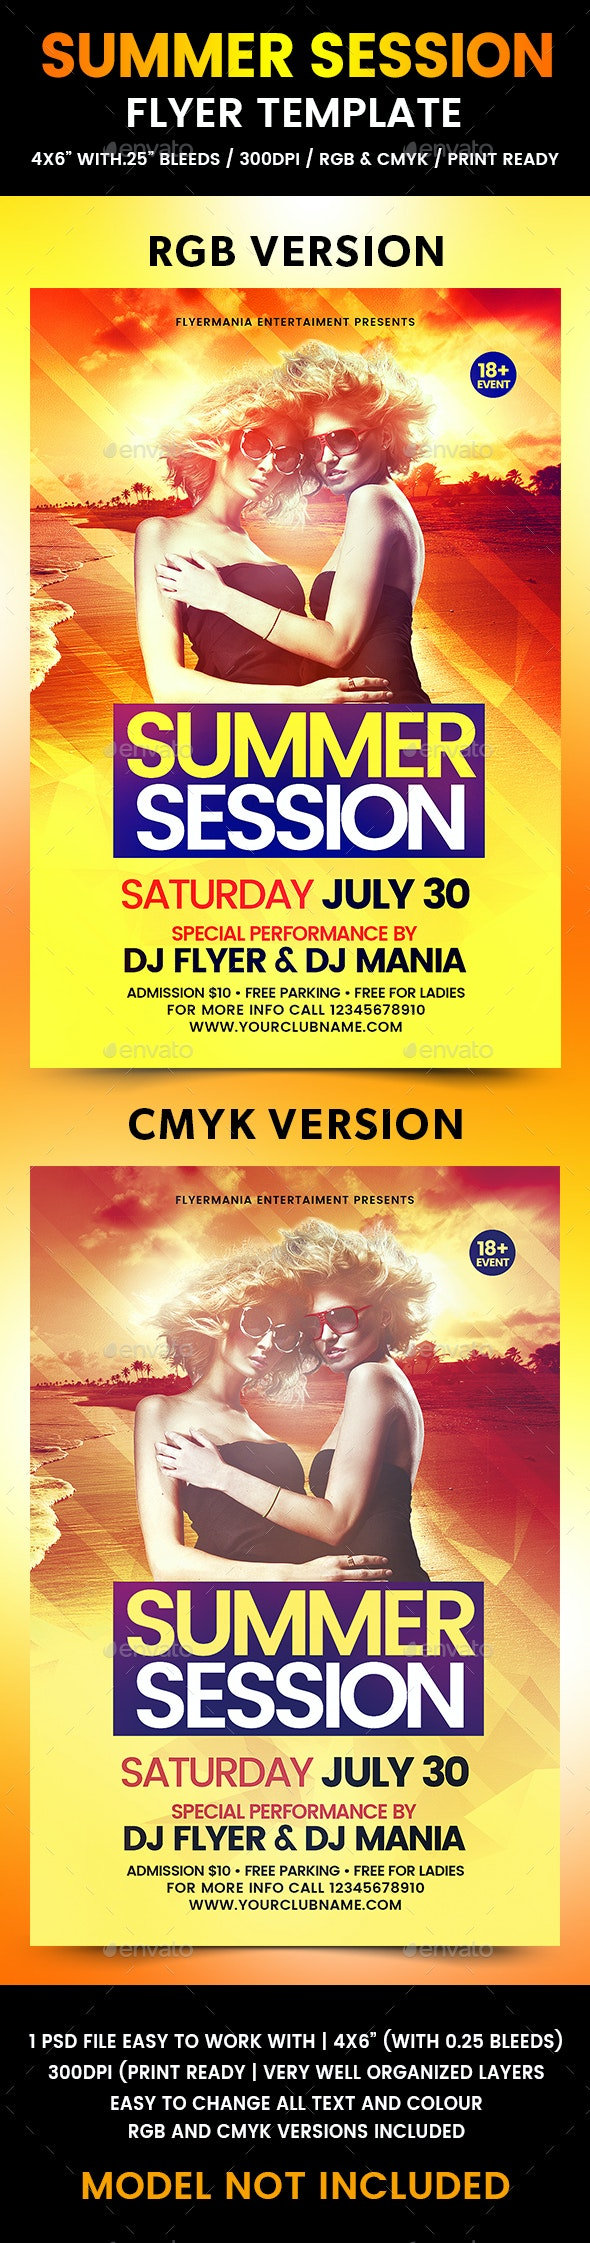 Summer Session Flyer Template - Flyers Print Templates